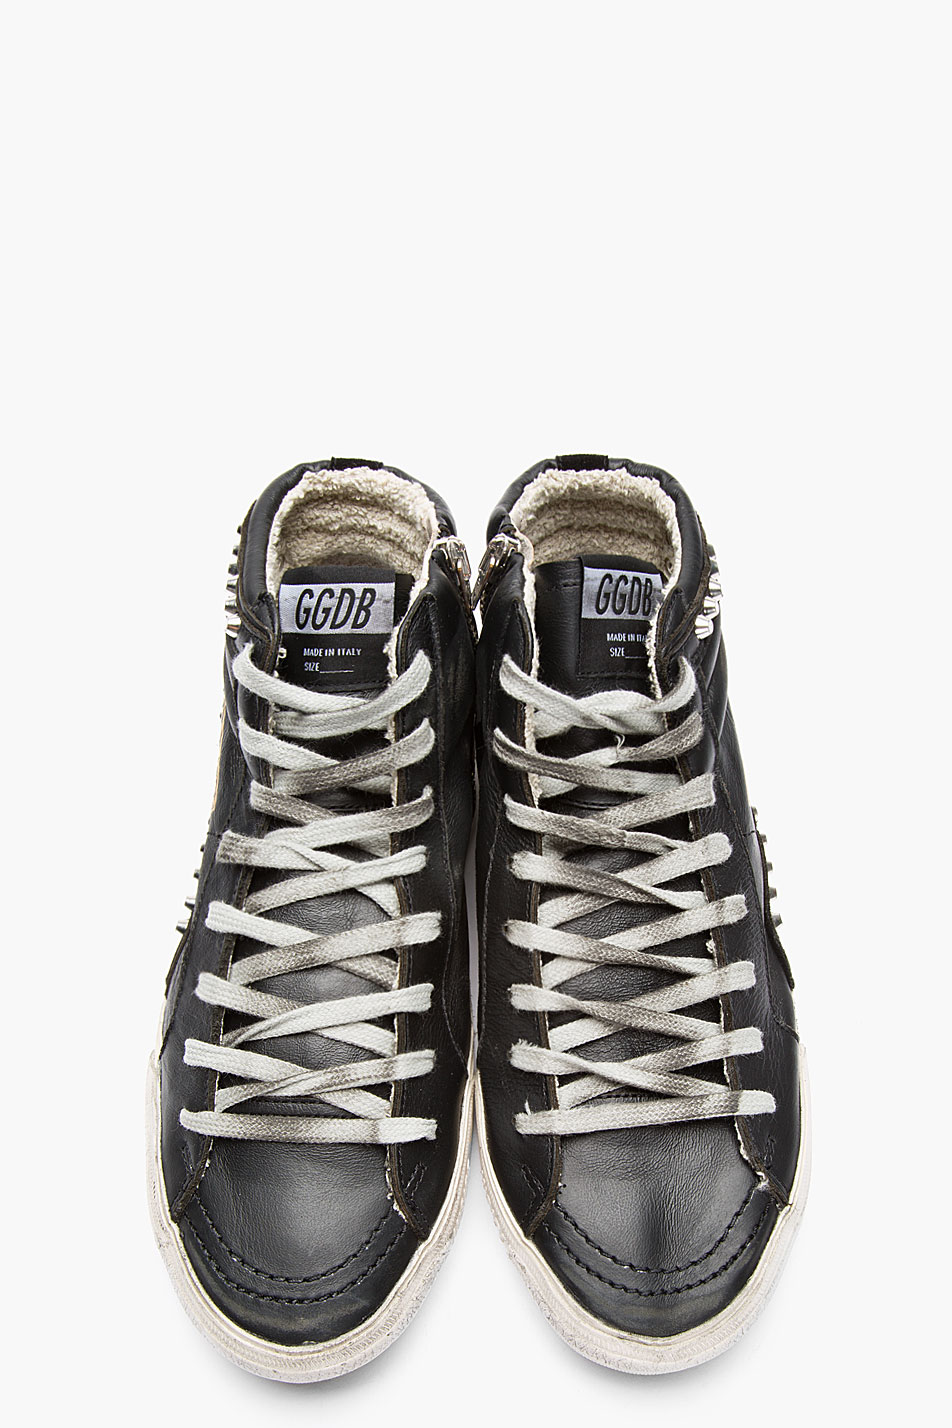 Golden Goose Mens 'super Star' Trainers in White - Cheap Golden Goose Outlet Sale